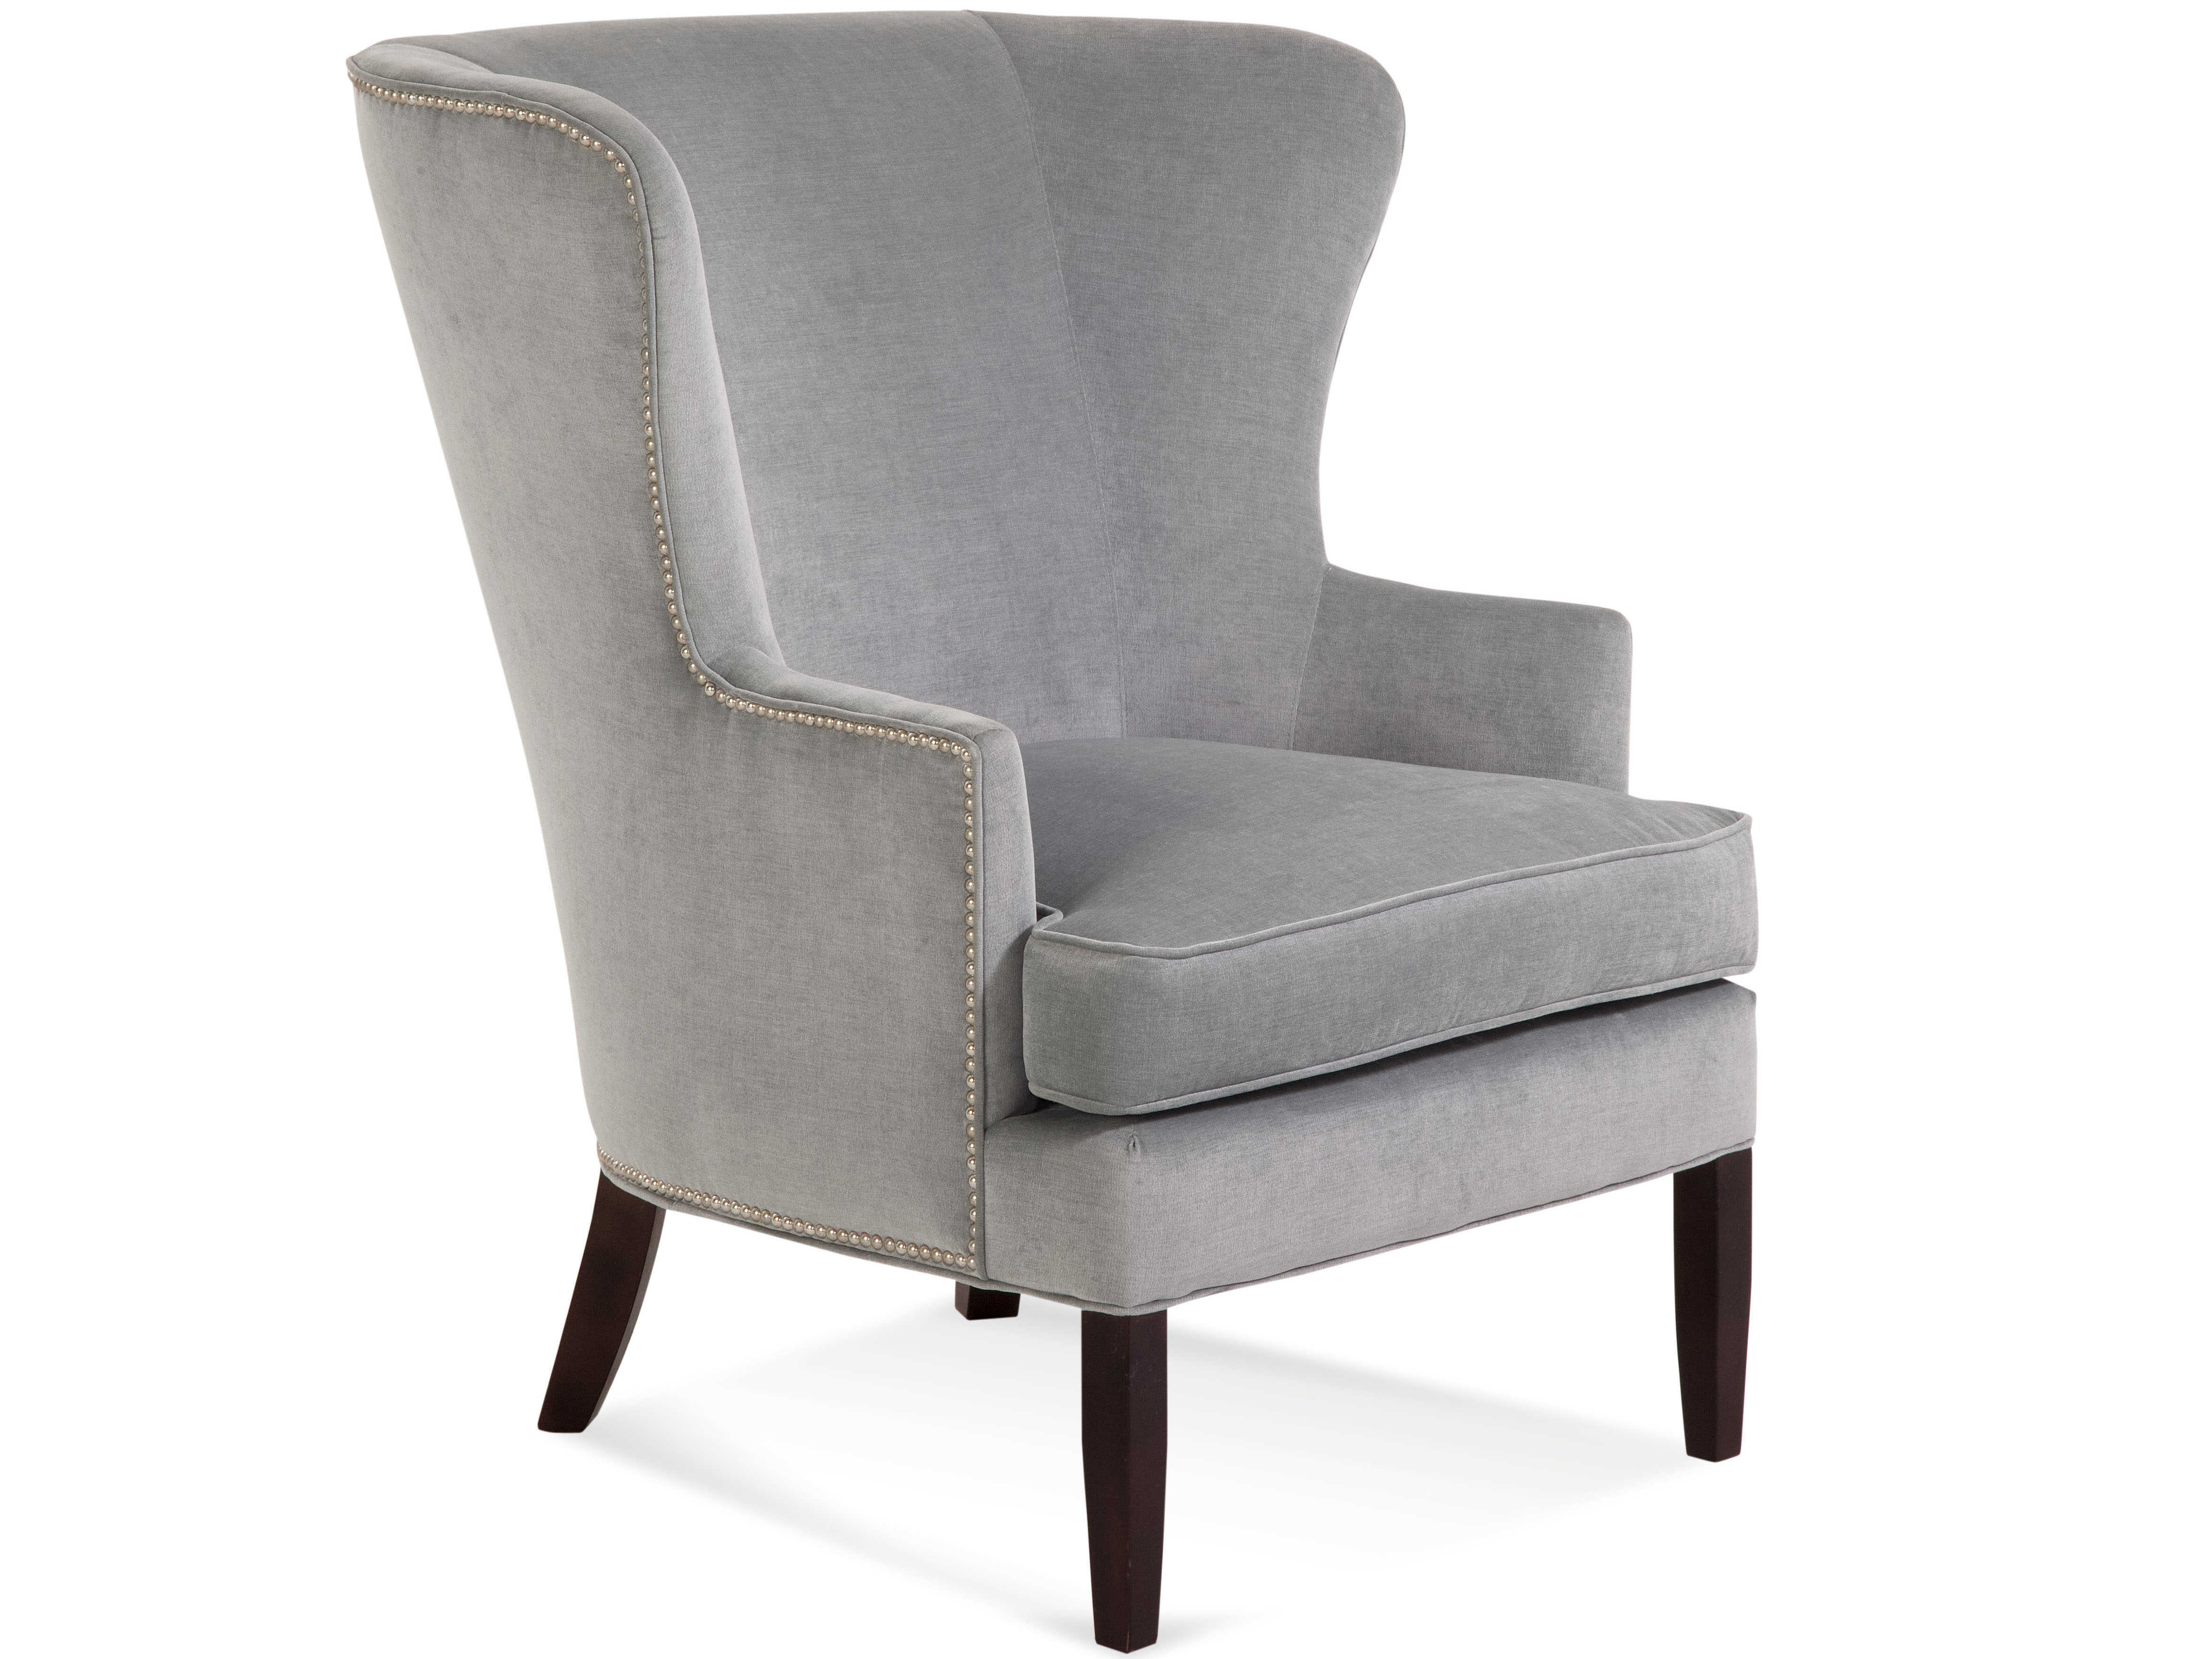 Enjoyable Braxton Culler Tredwell Accent Chair Pabps2019 Chair Design Images Pabps2019Com